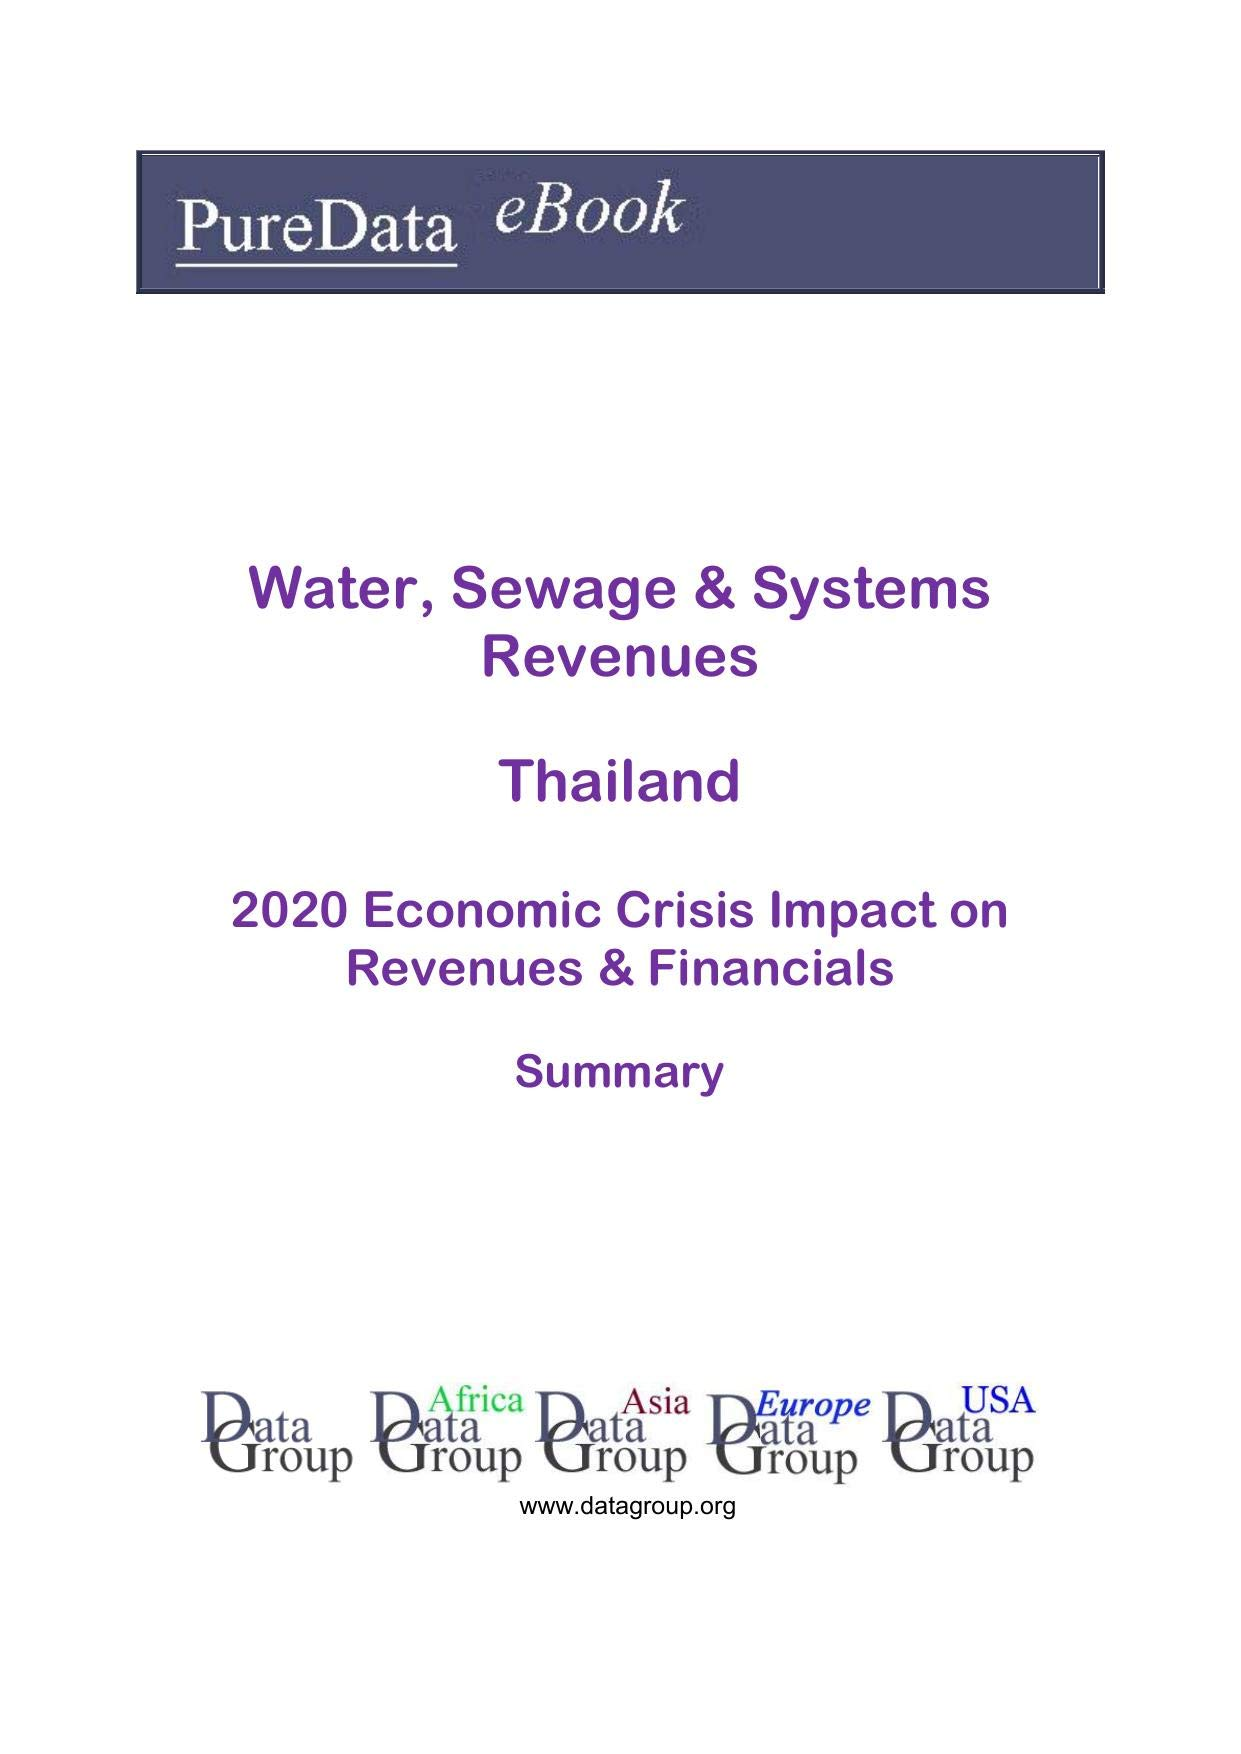 Water, Sewage & Systems Revenues Thailand Summary: 2020 Economic Crisis Impact on Revenues & Financials